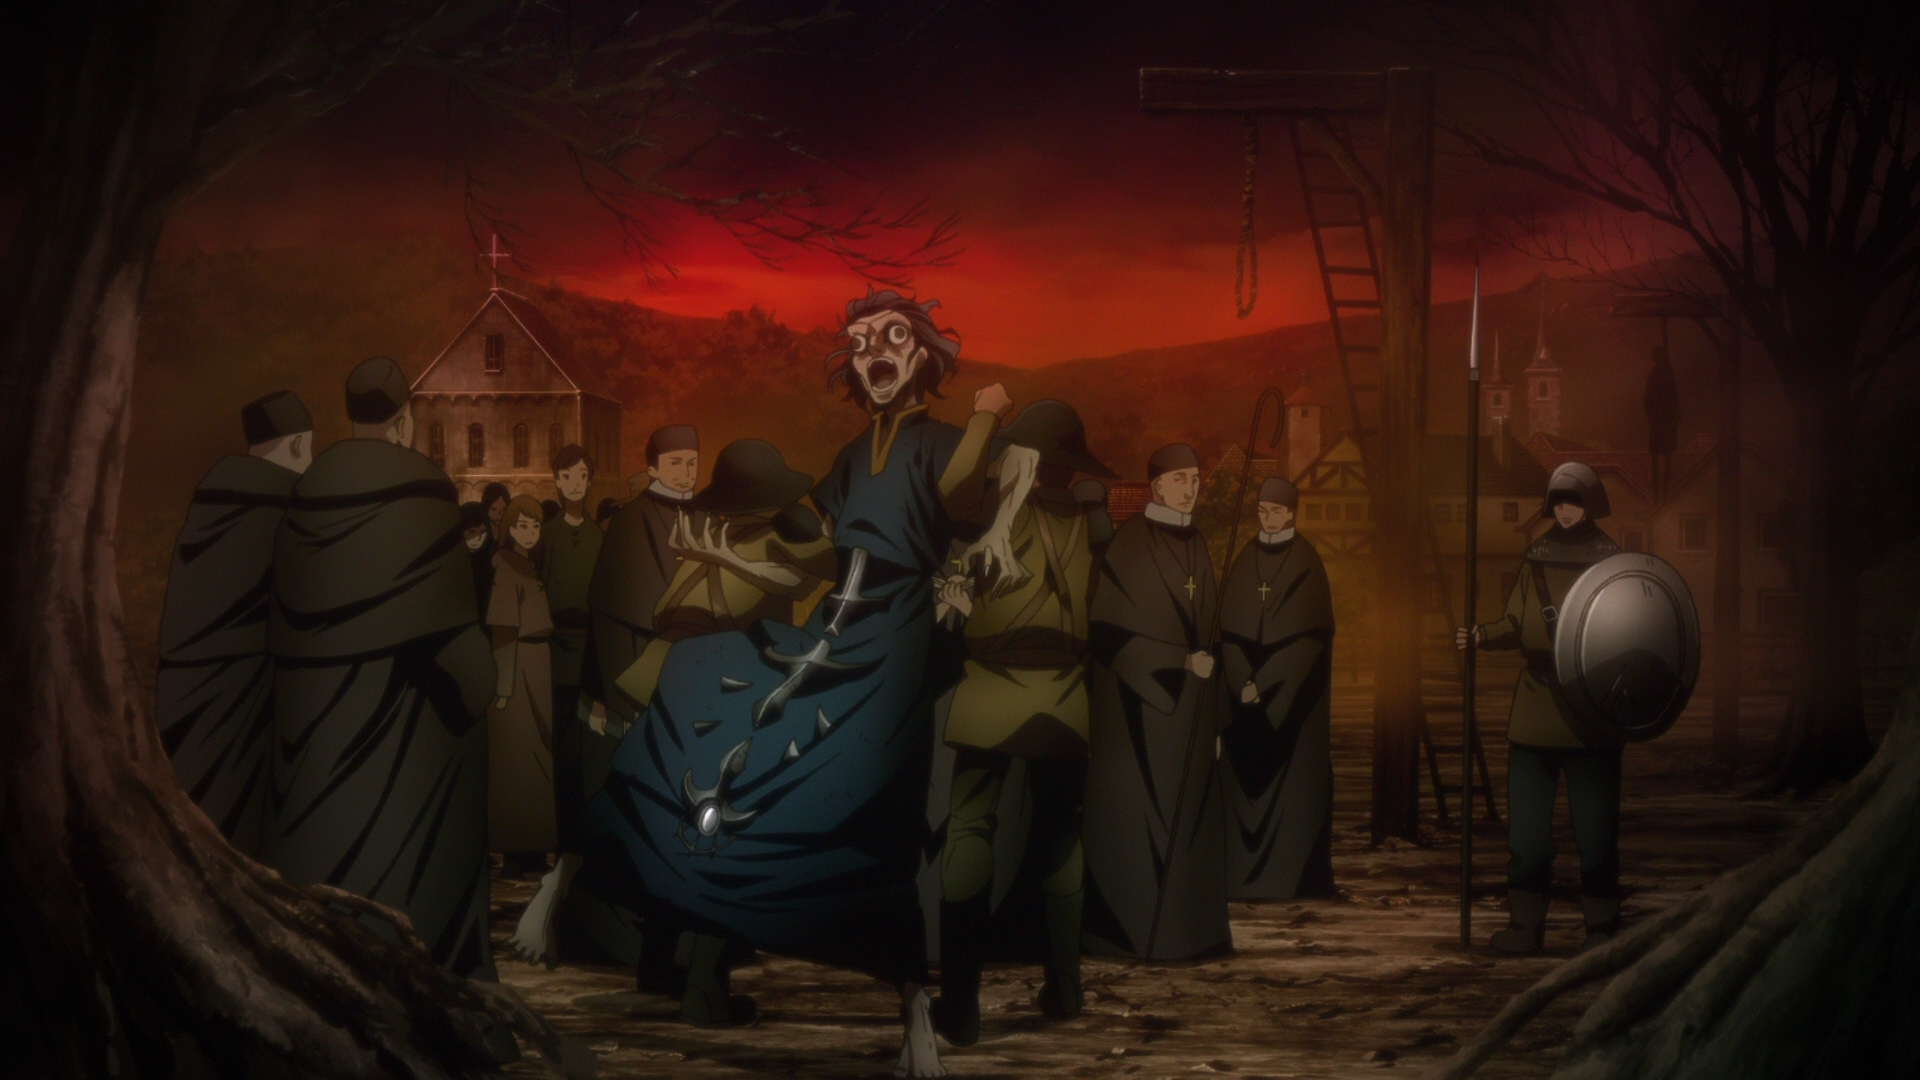 Caster fatezero type moon wiki fandom powered by wikia gilles before his execution the execution of gilles de rais biocorpaavc